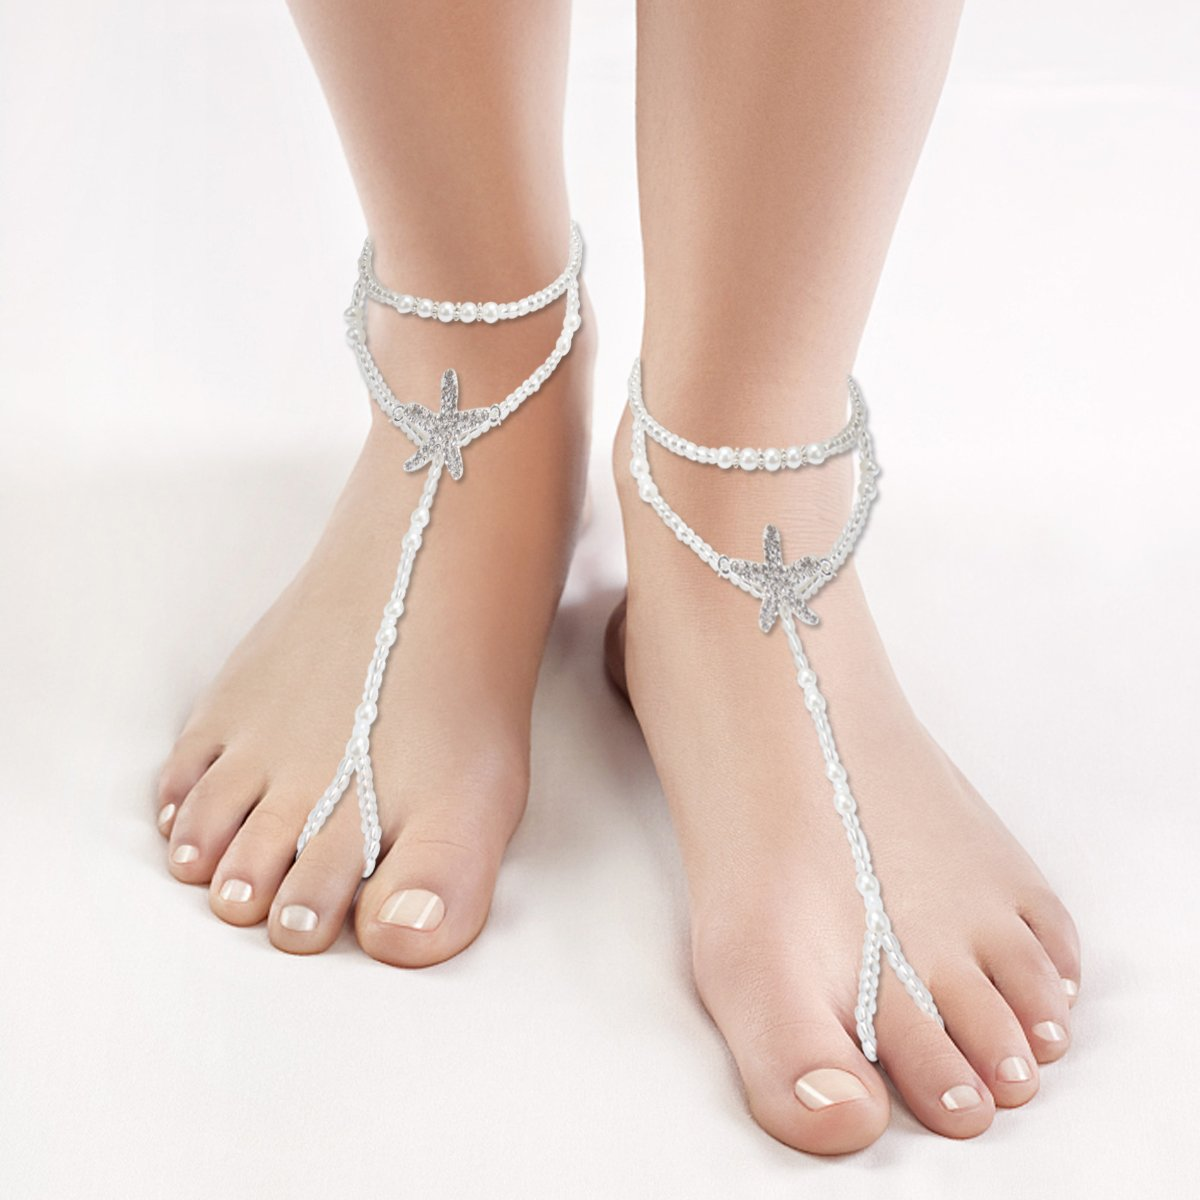 Ondder 1 Pair Anklet Foot Jewelry for Women Barefoot Sandals Beach Wedding Bridal Accessories,Bridesmaids Gift